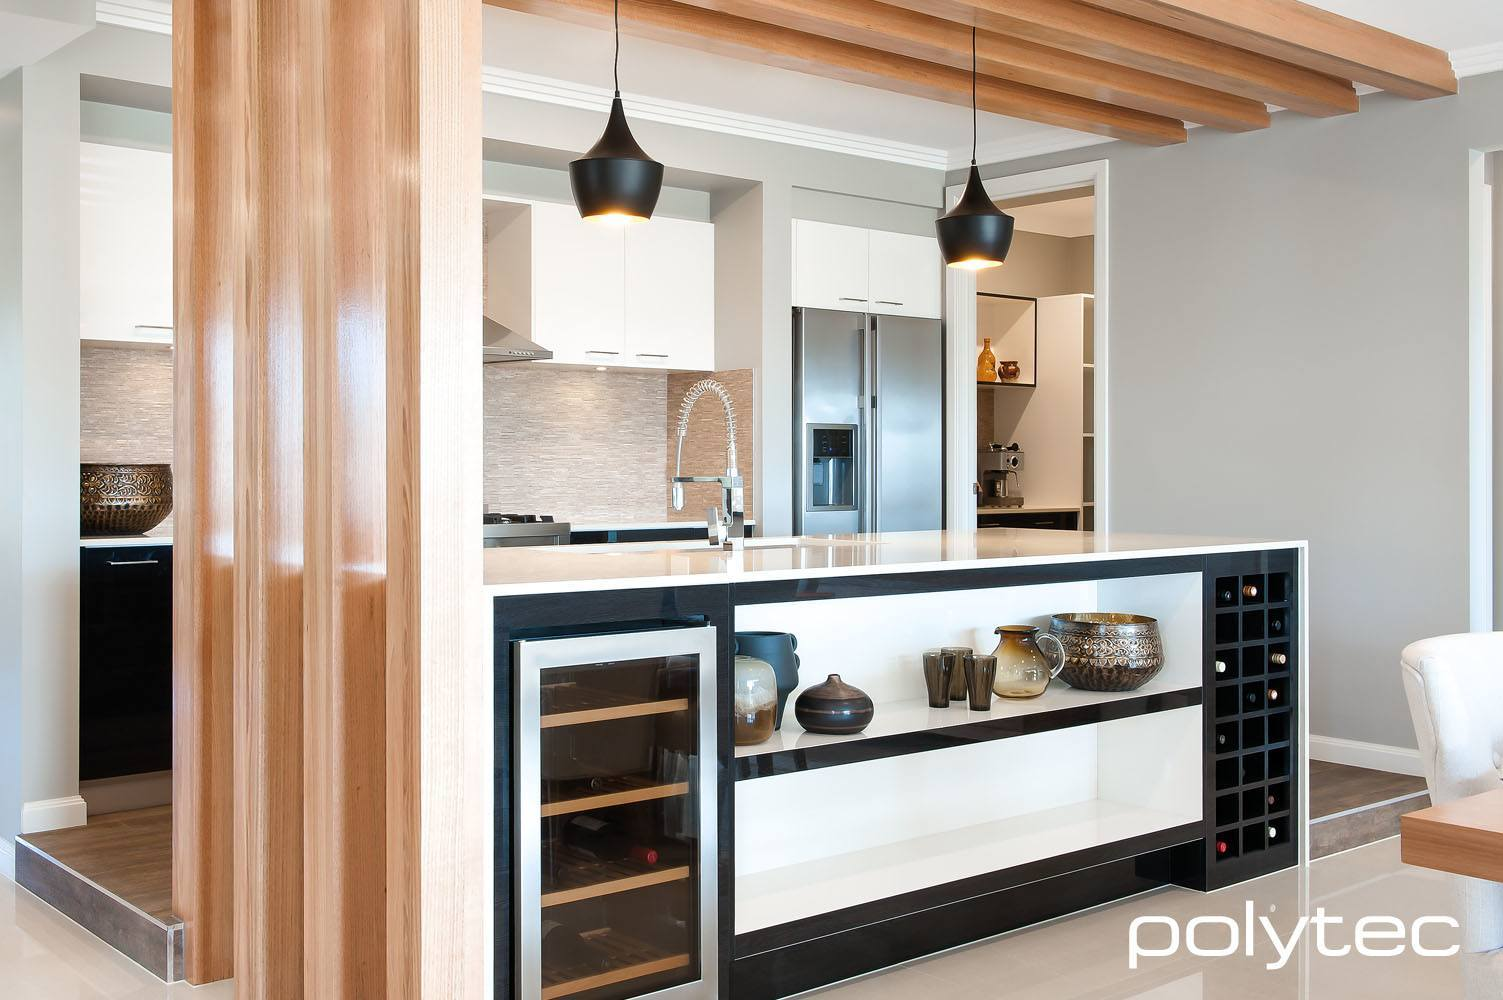 kitchen design min bar polytec